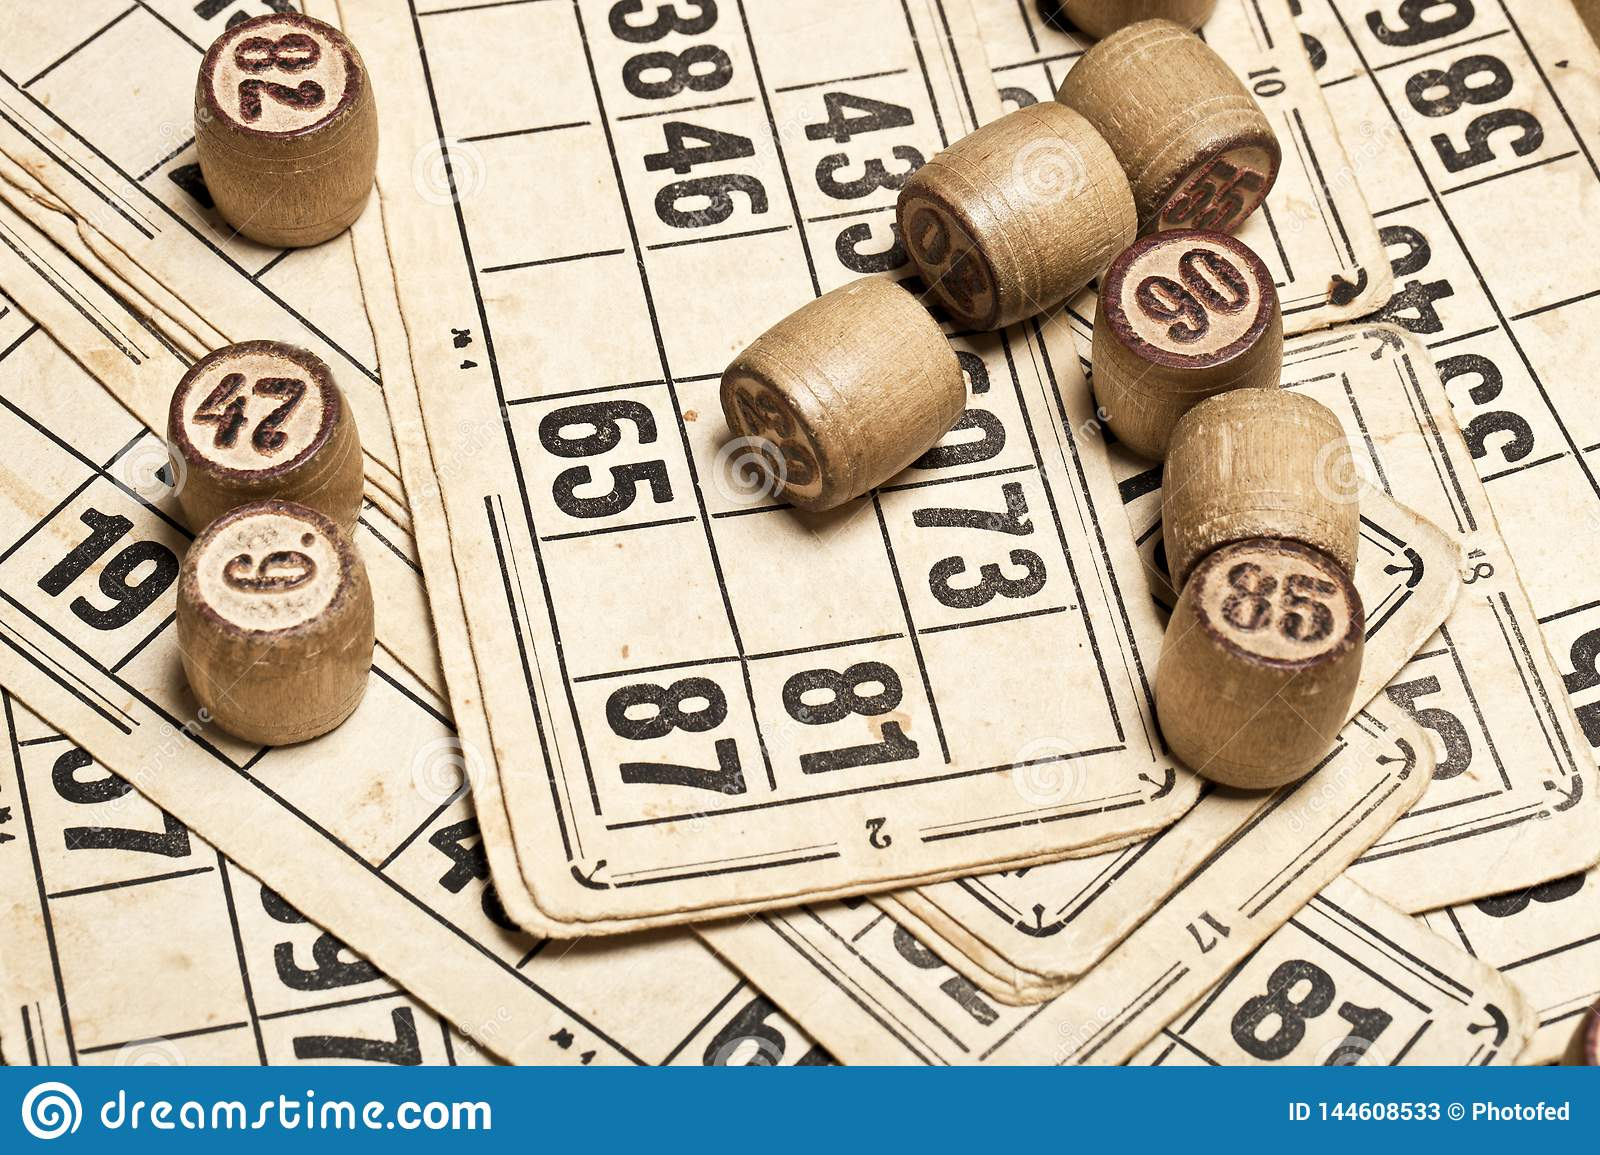 Table Game Bingo  Wooden Lotto Barrels With Bag, Playing Cards For